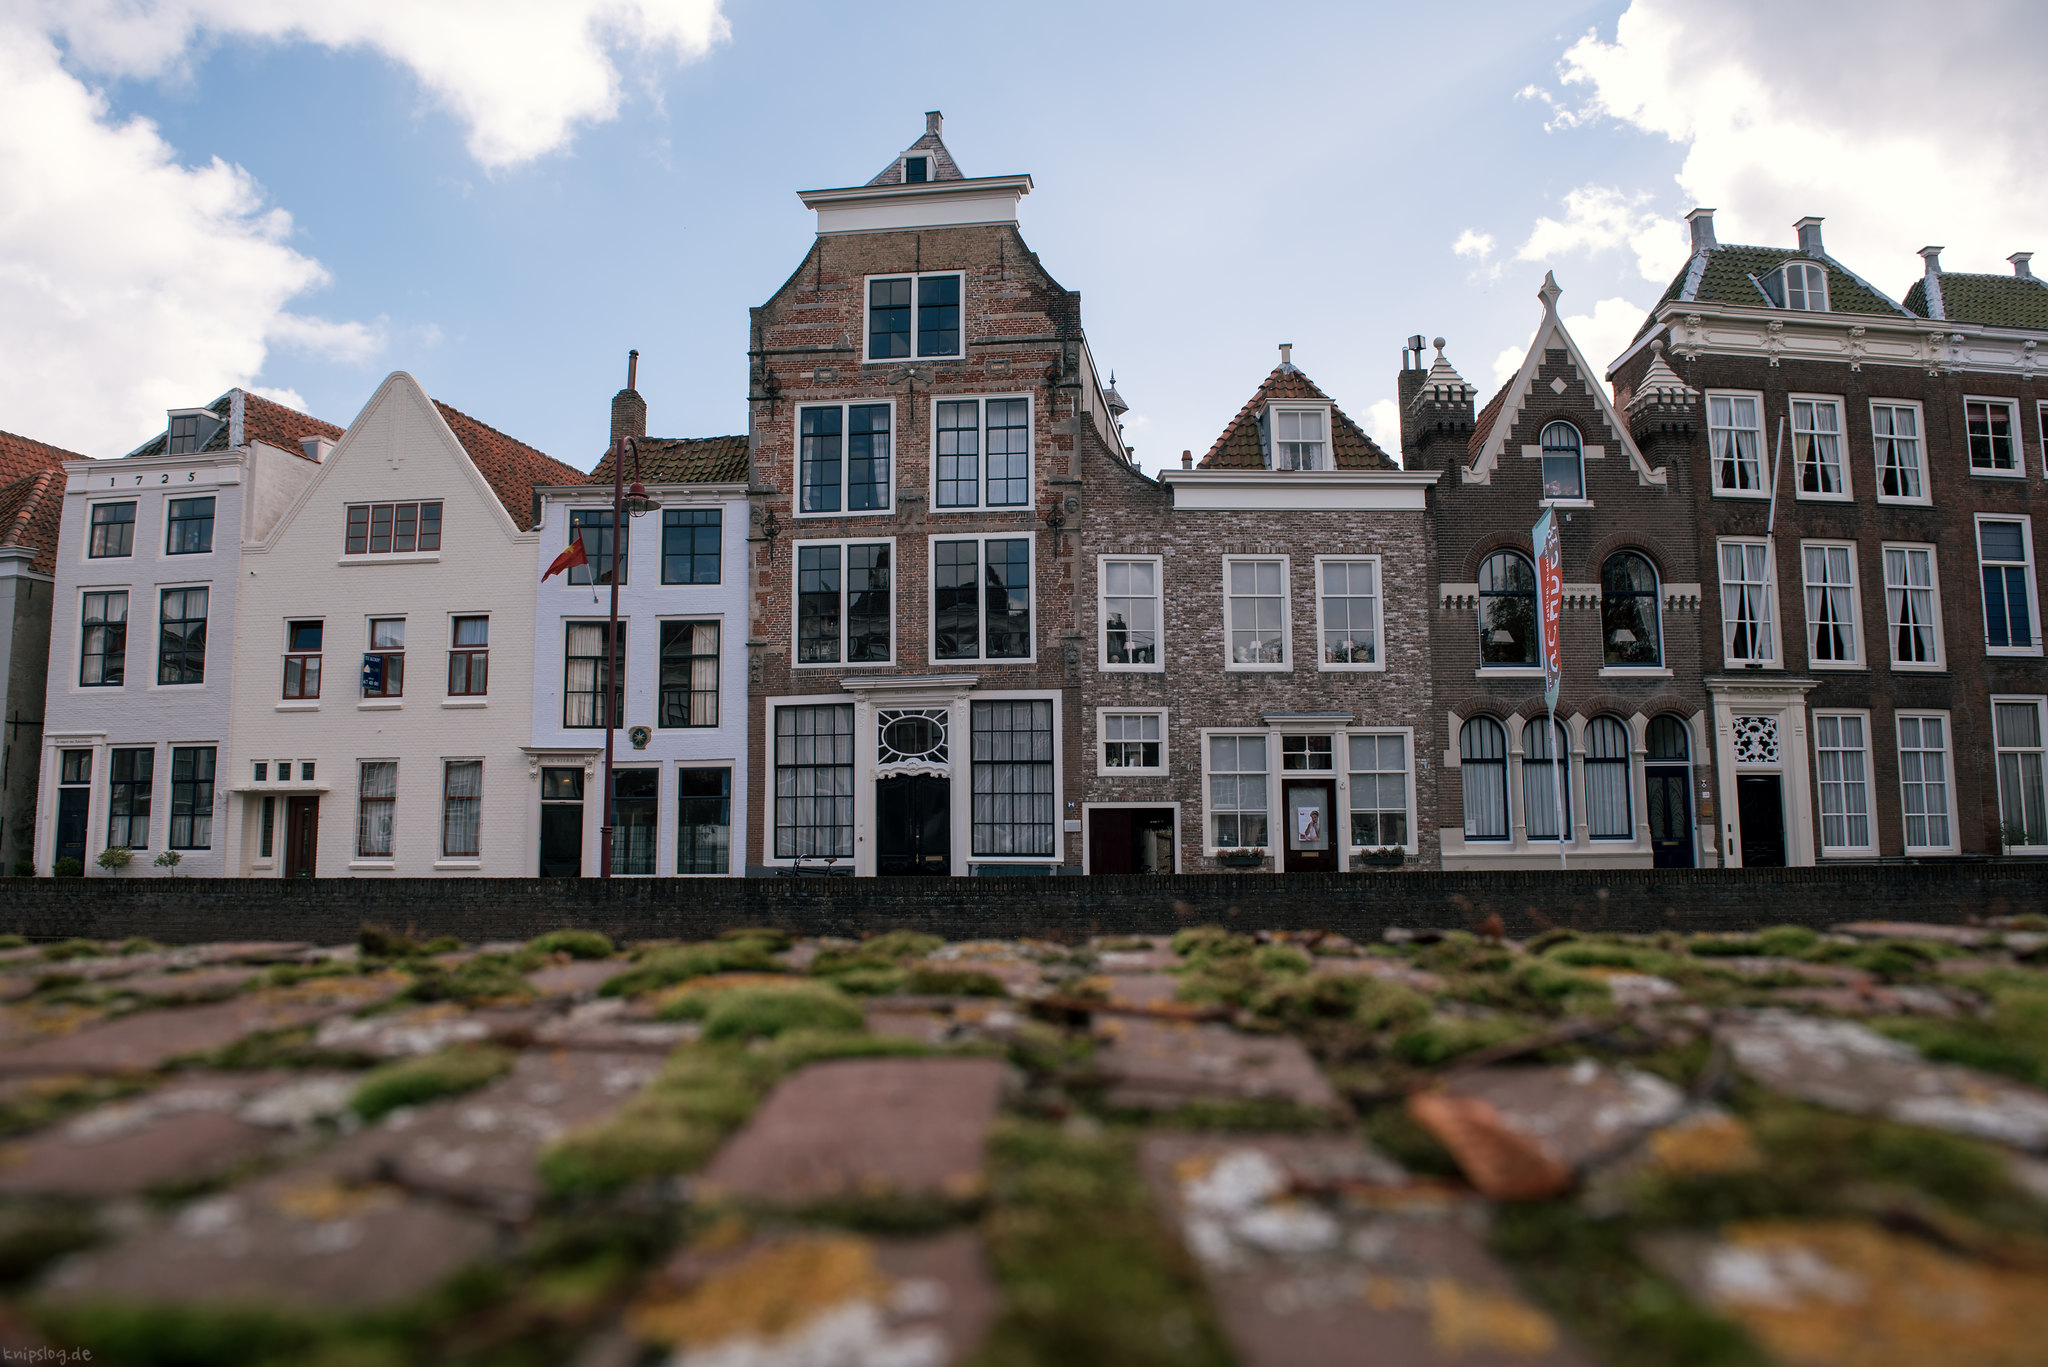 Typical houses in Zeeland